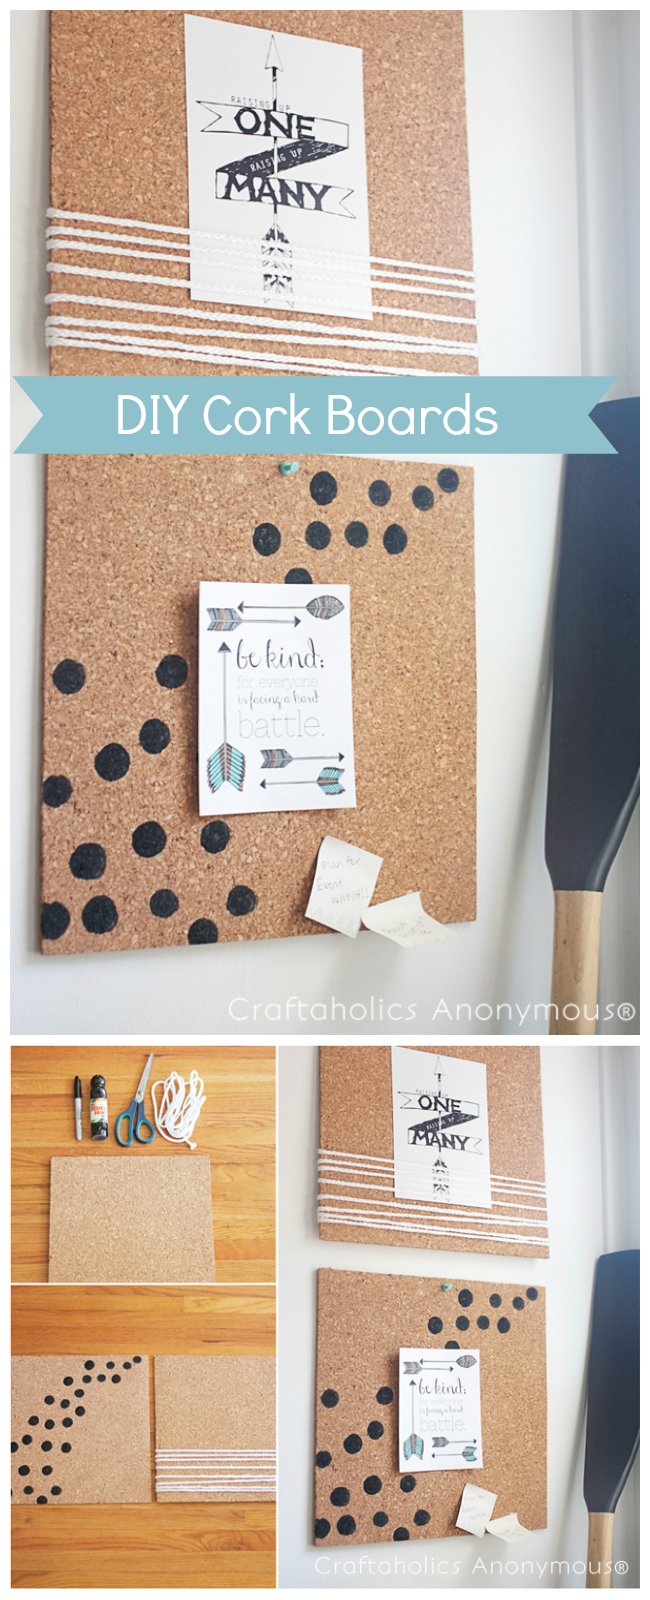 DIY cork boards